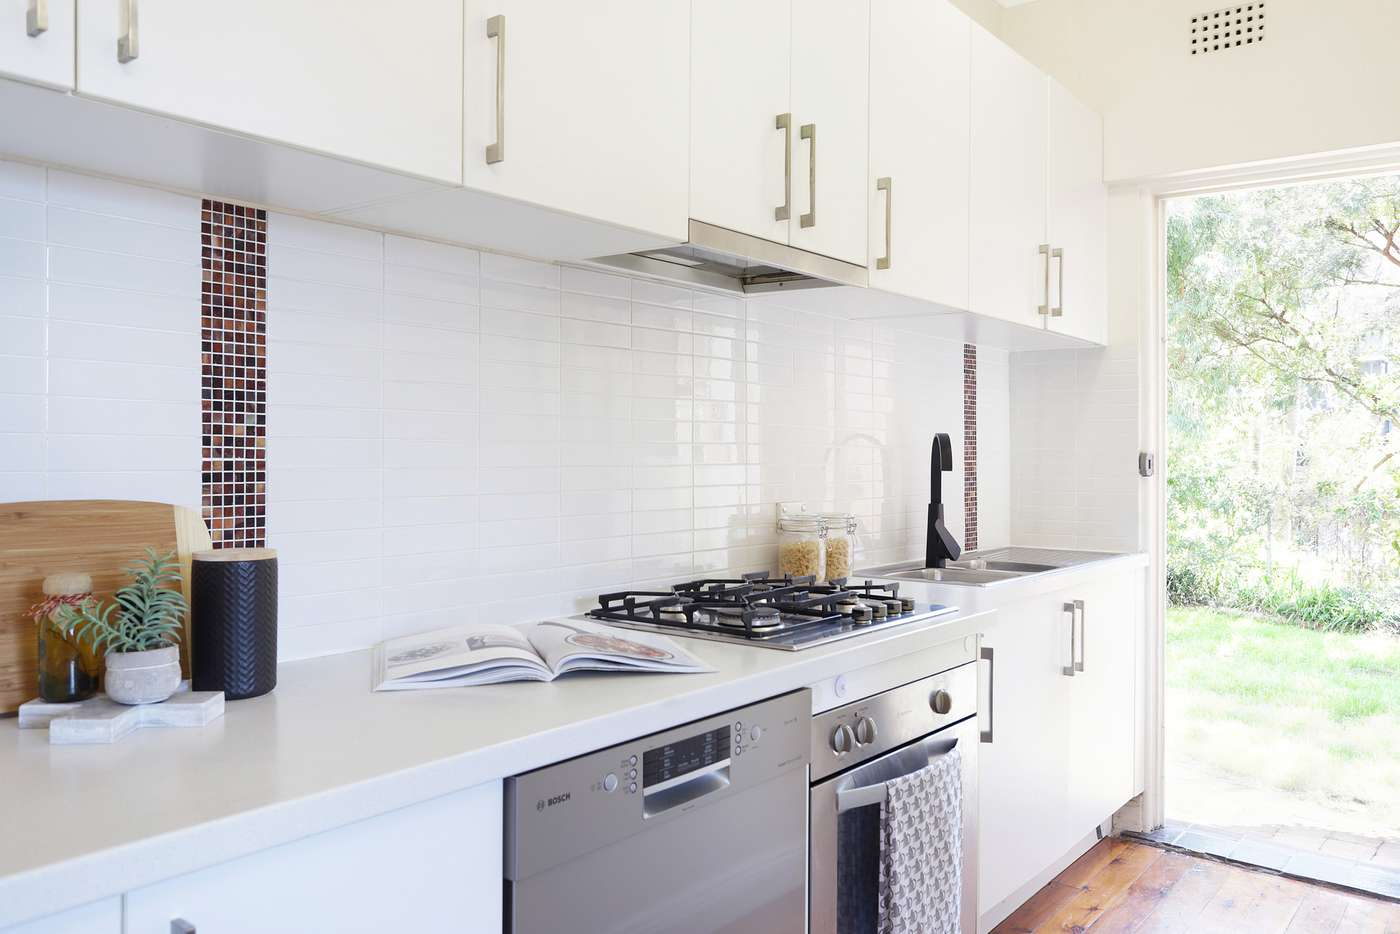 Main view of Homely apartment listing, 2/10 Albert Street, Randwick NSW 2031